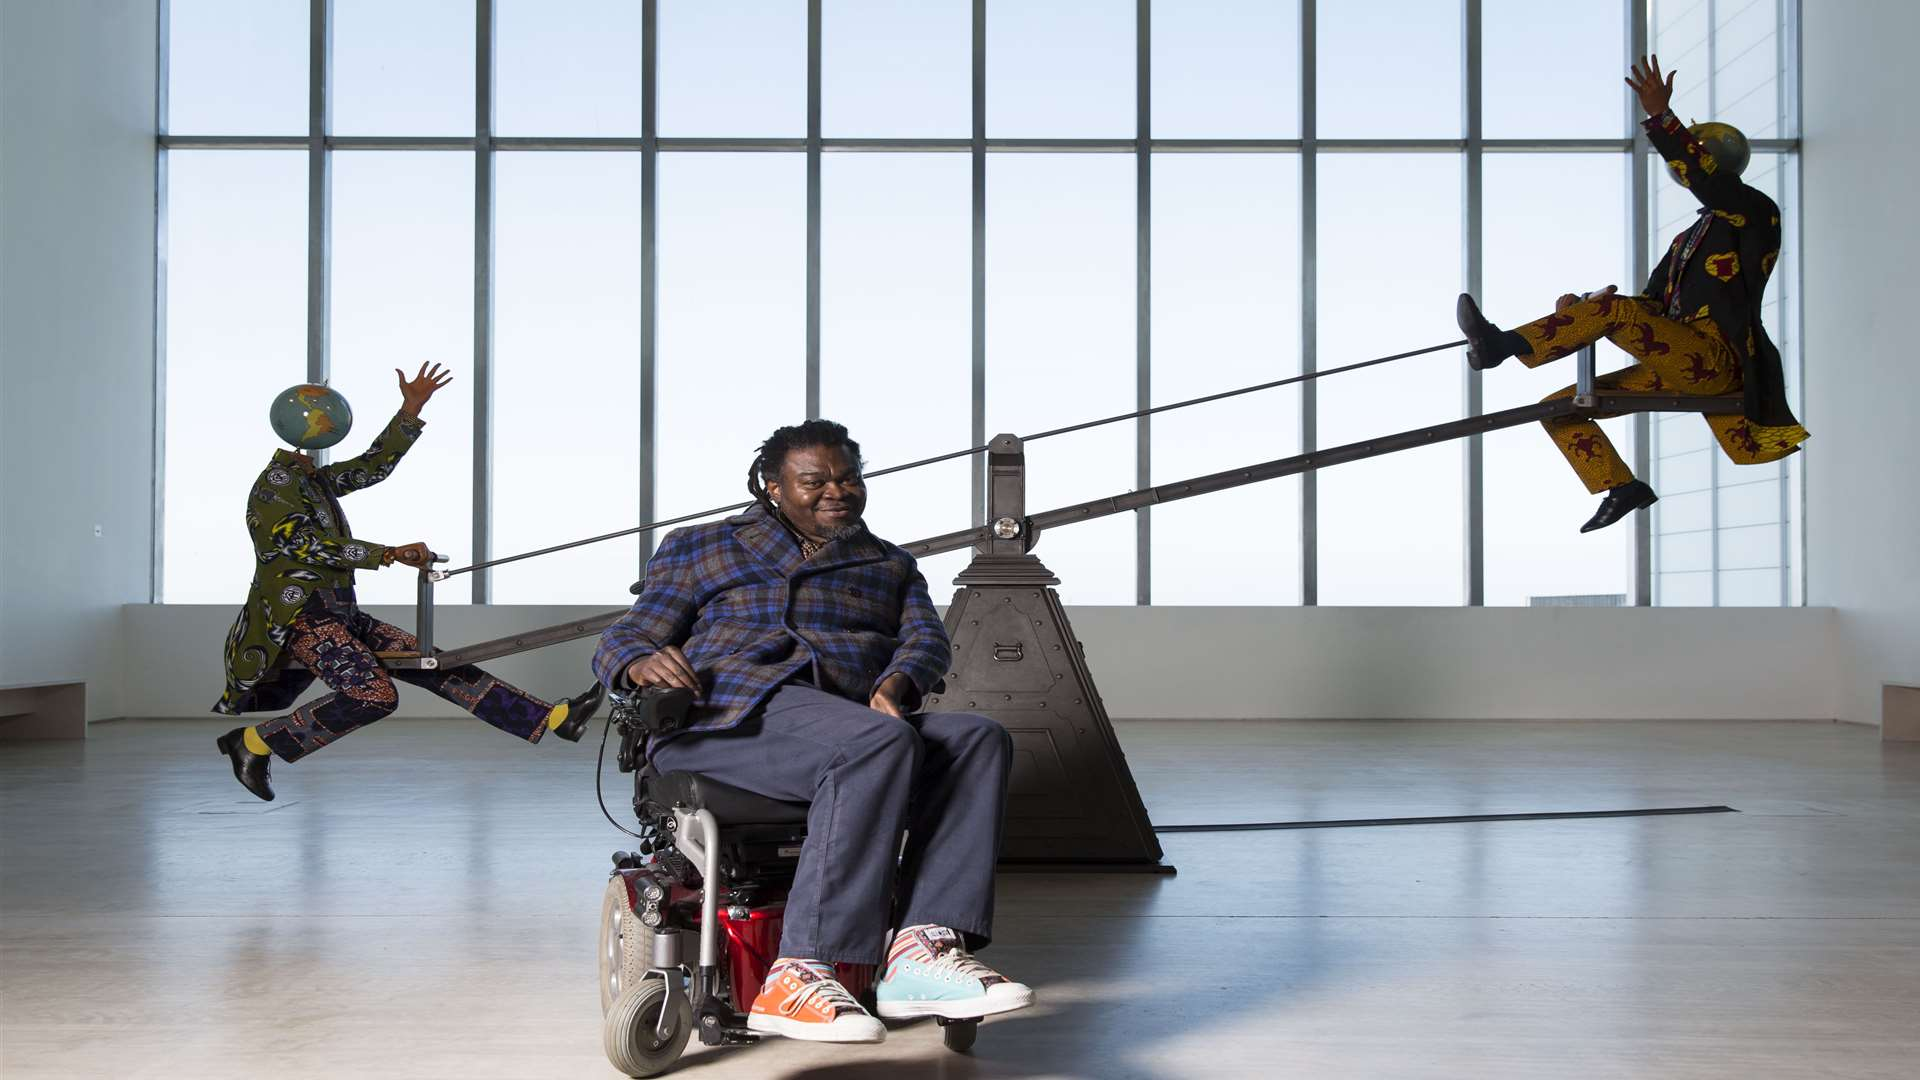 Yinka Shonibare's new work End of Empire is currently on display at the Turner